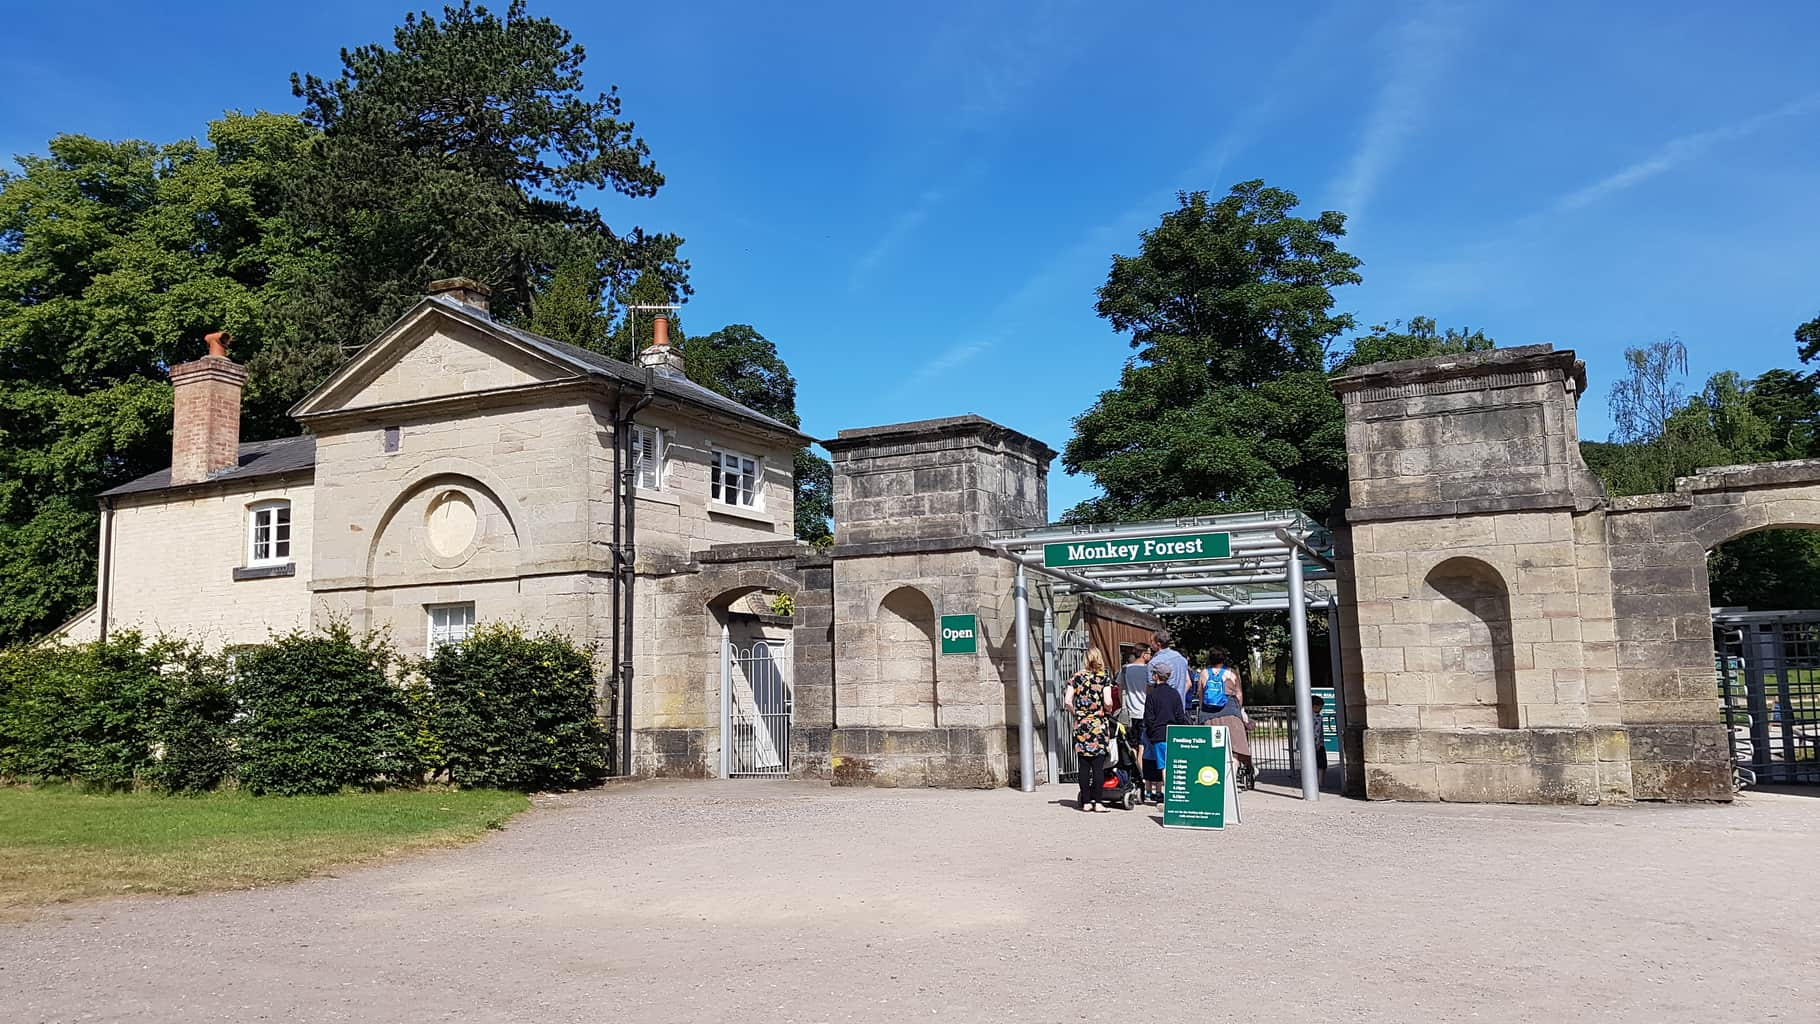 5 places to visit in Staffordshire this October half term